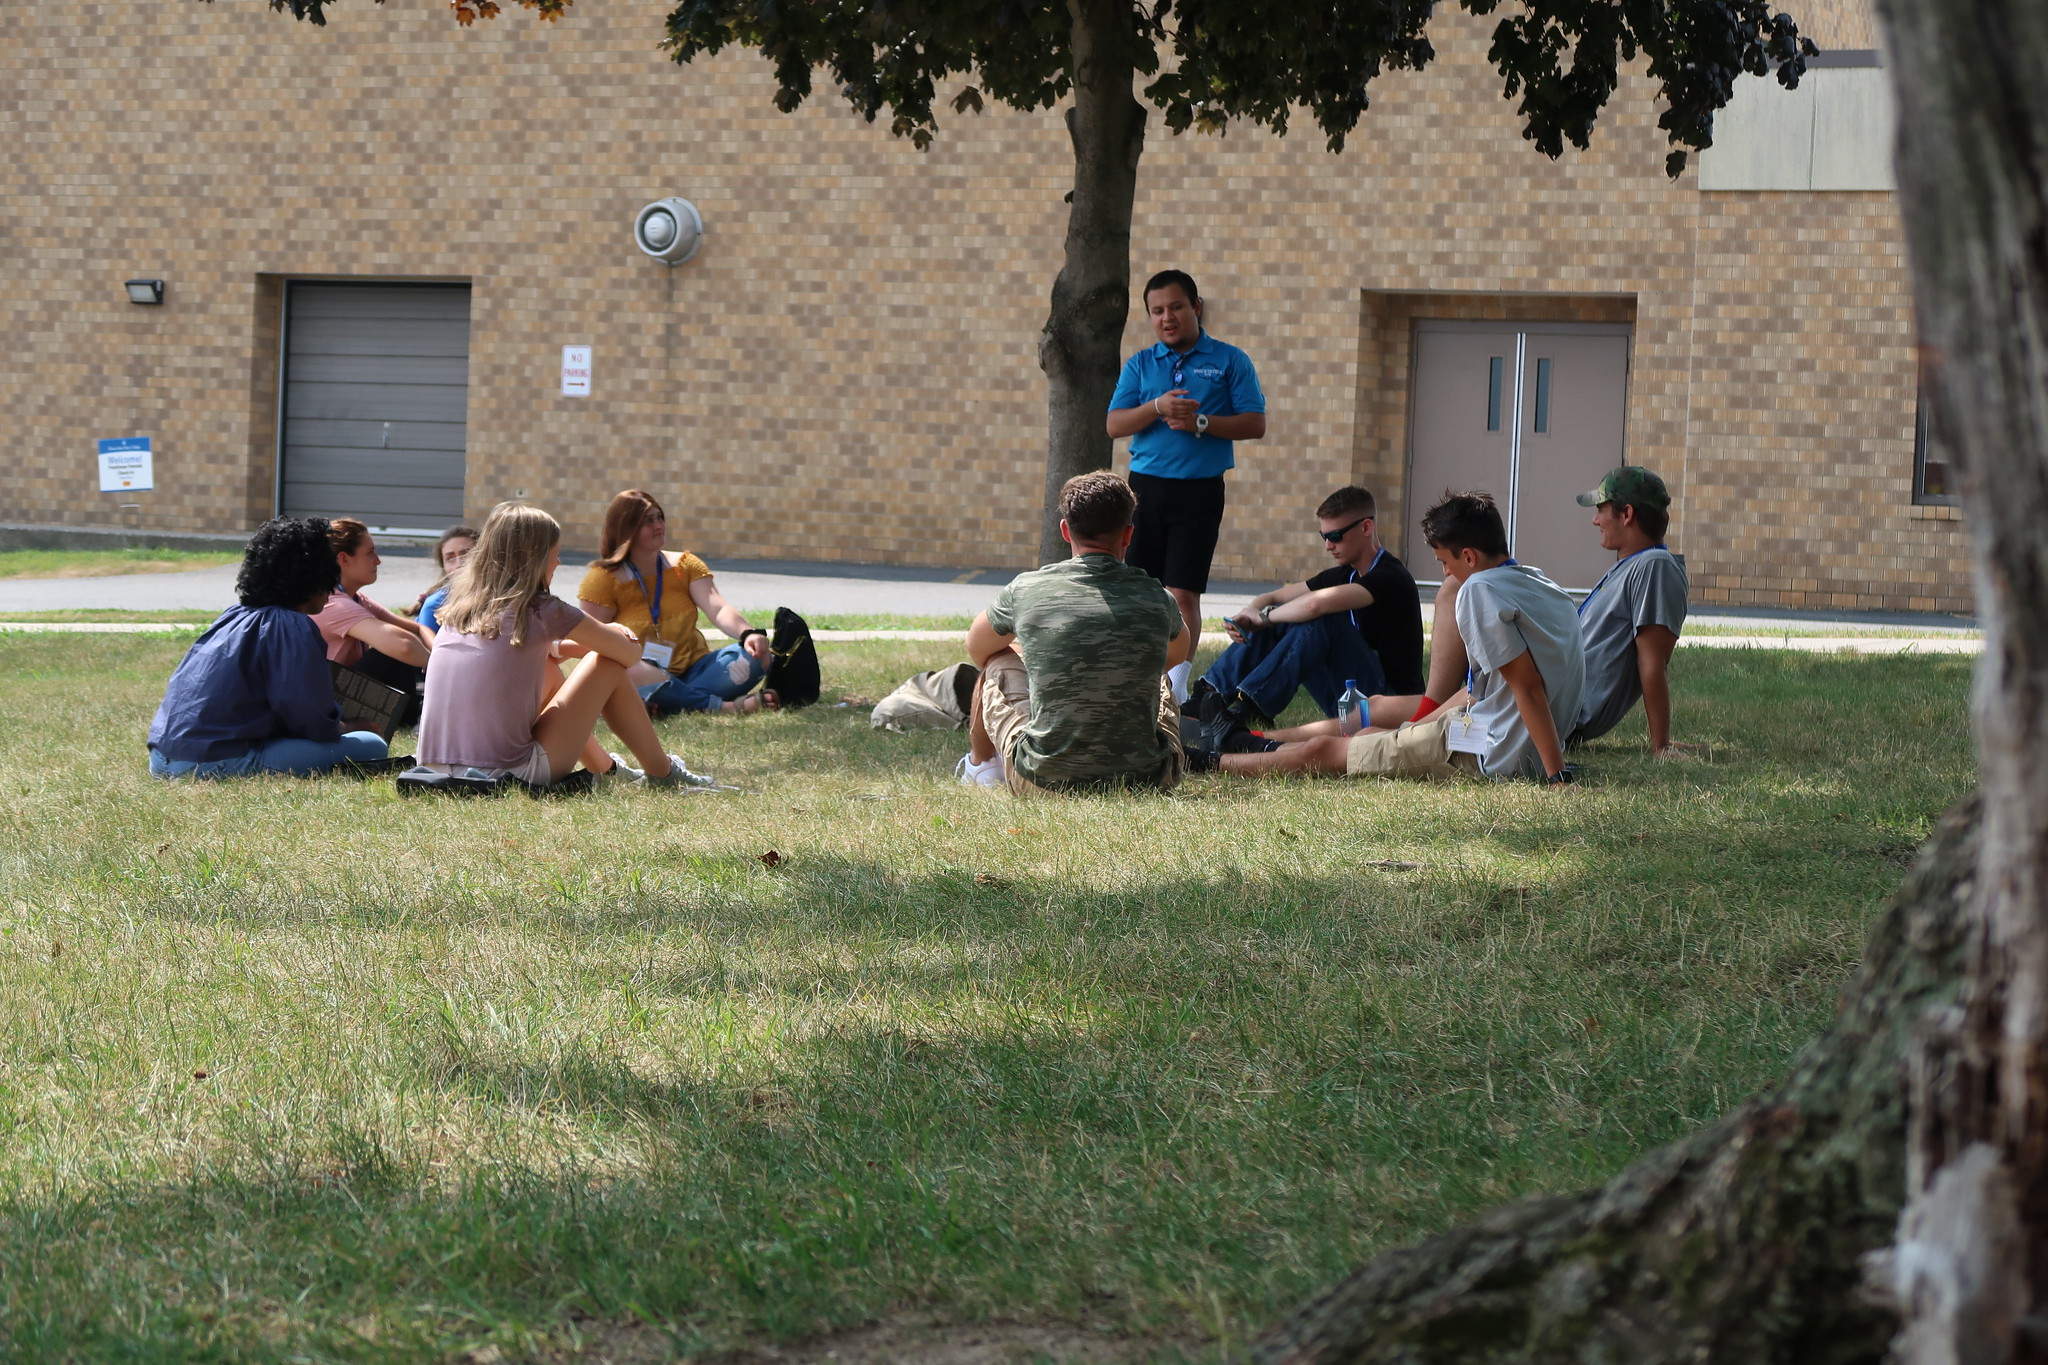 Students sitting in circle listening to Orientation Leader